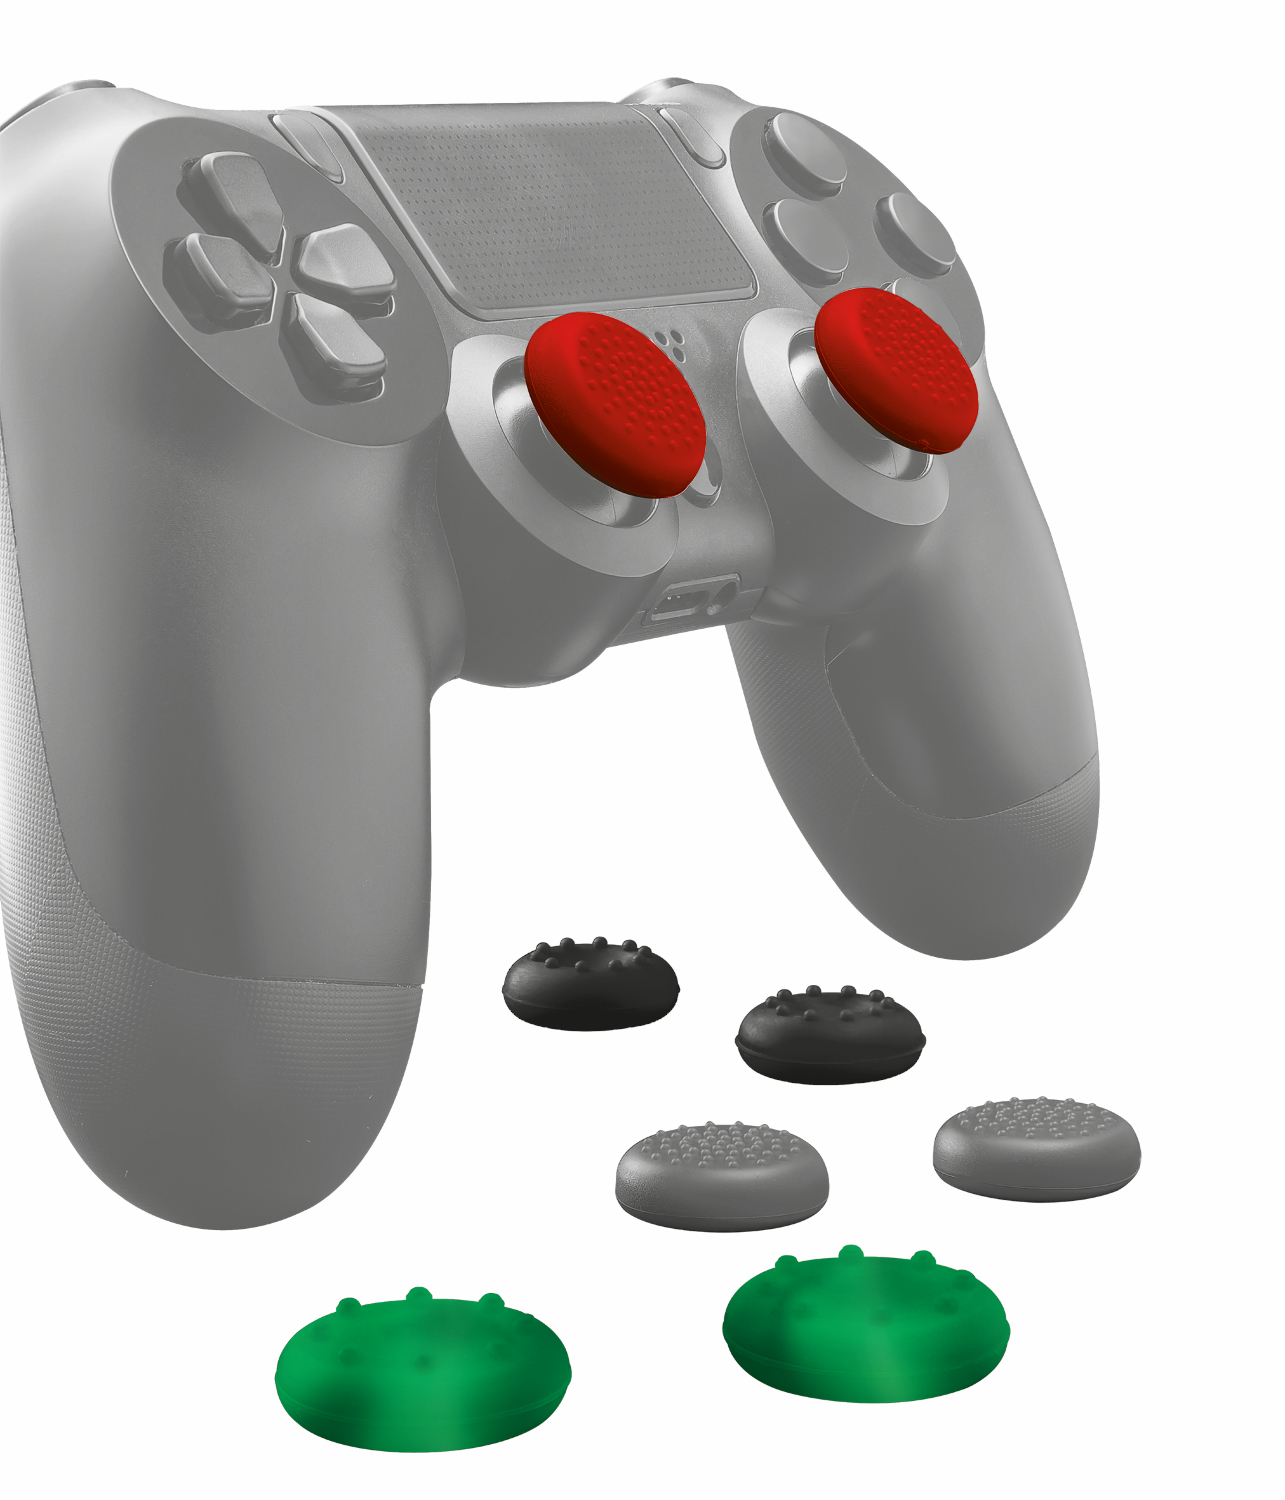 TRUST GXT 262 PS4 Thumb Grip Pack